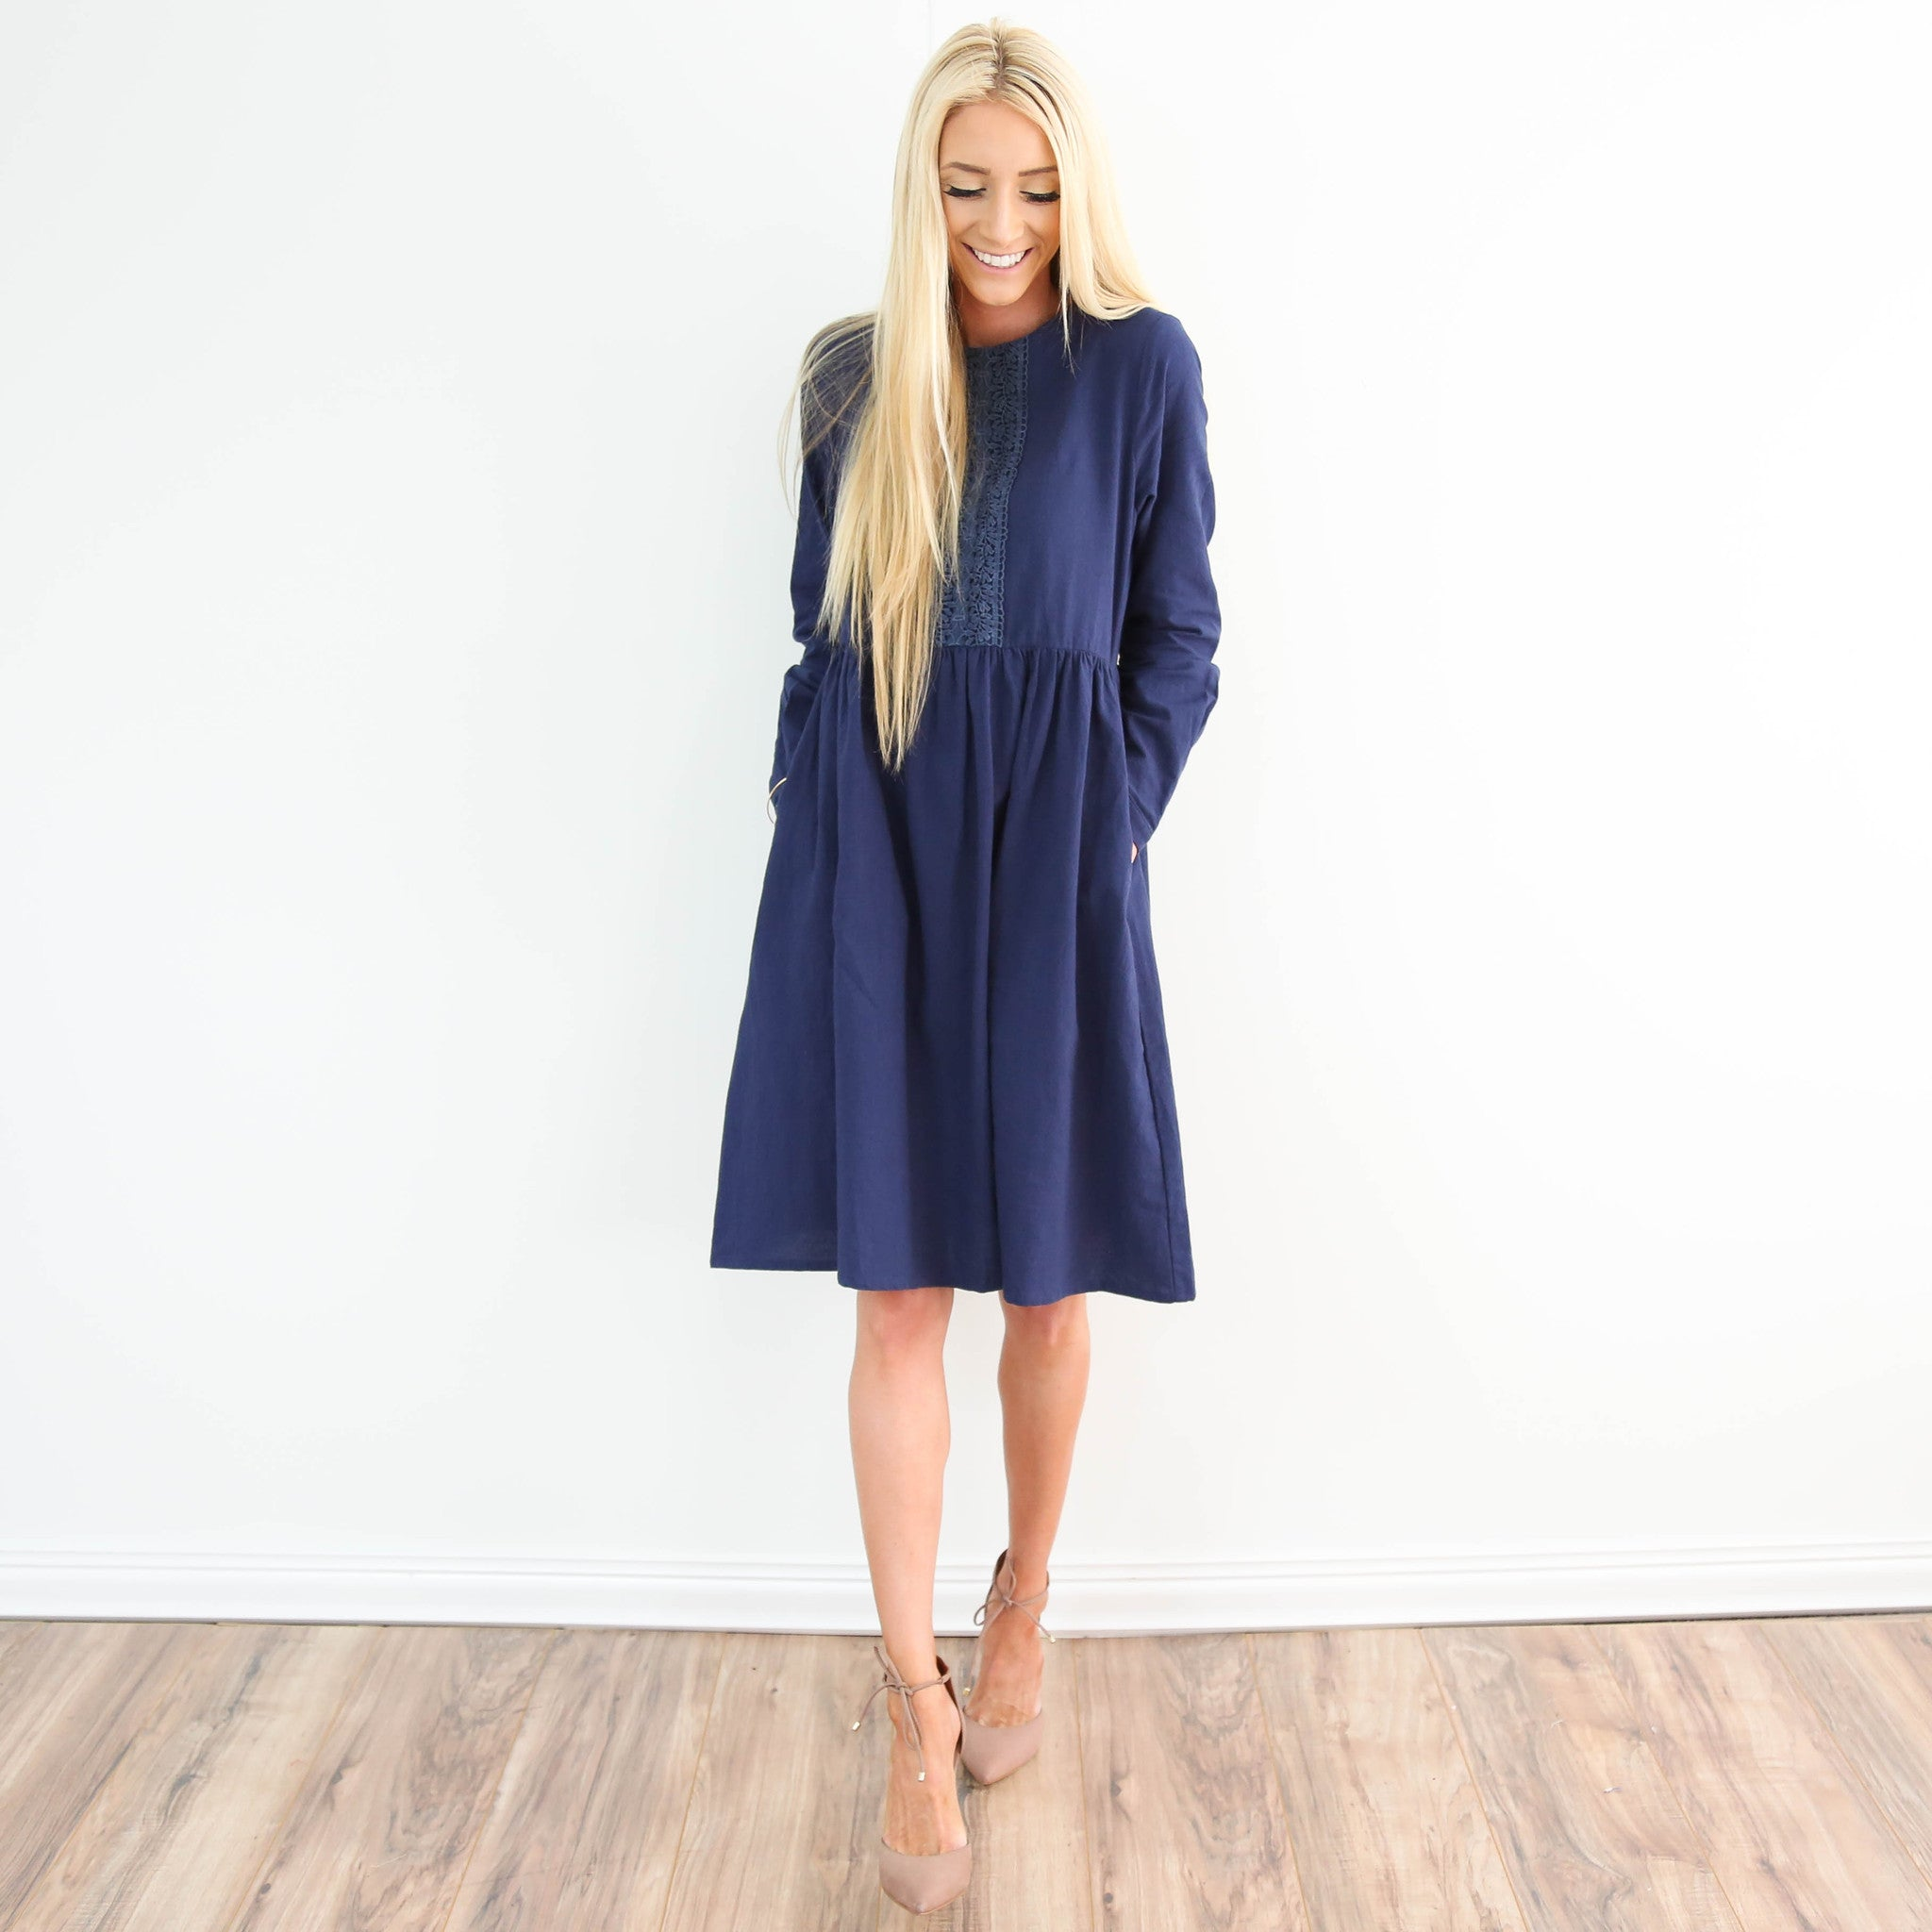 Inara Embroidered Dress in Navy